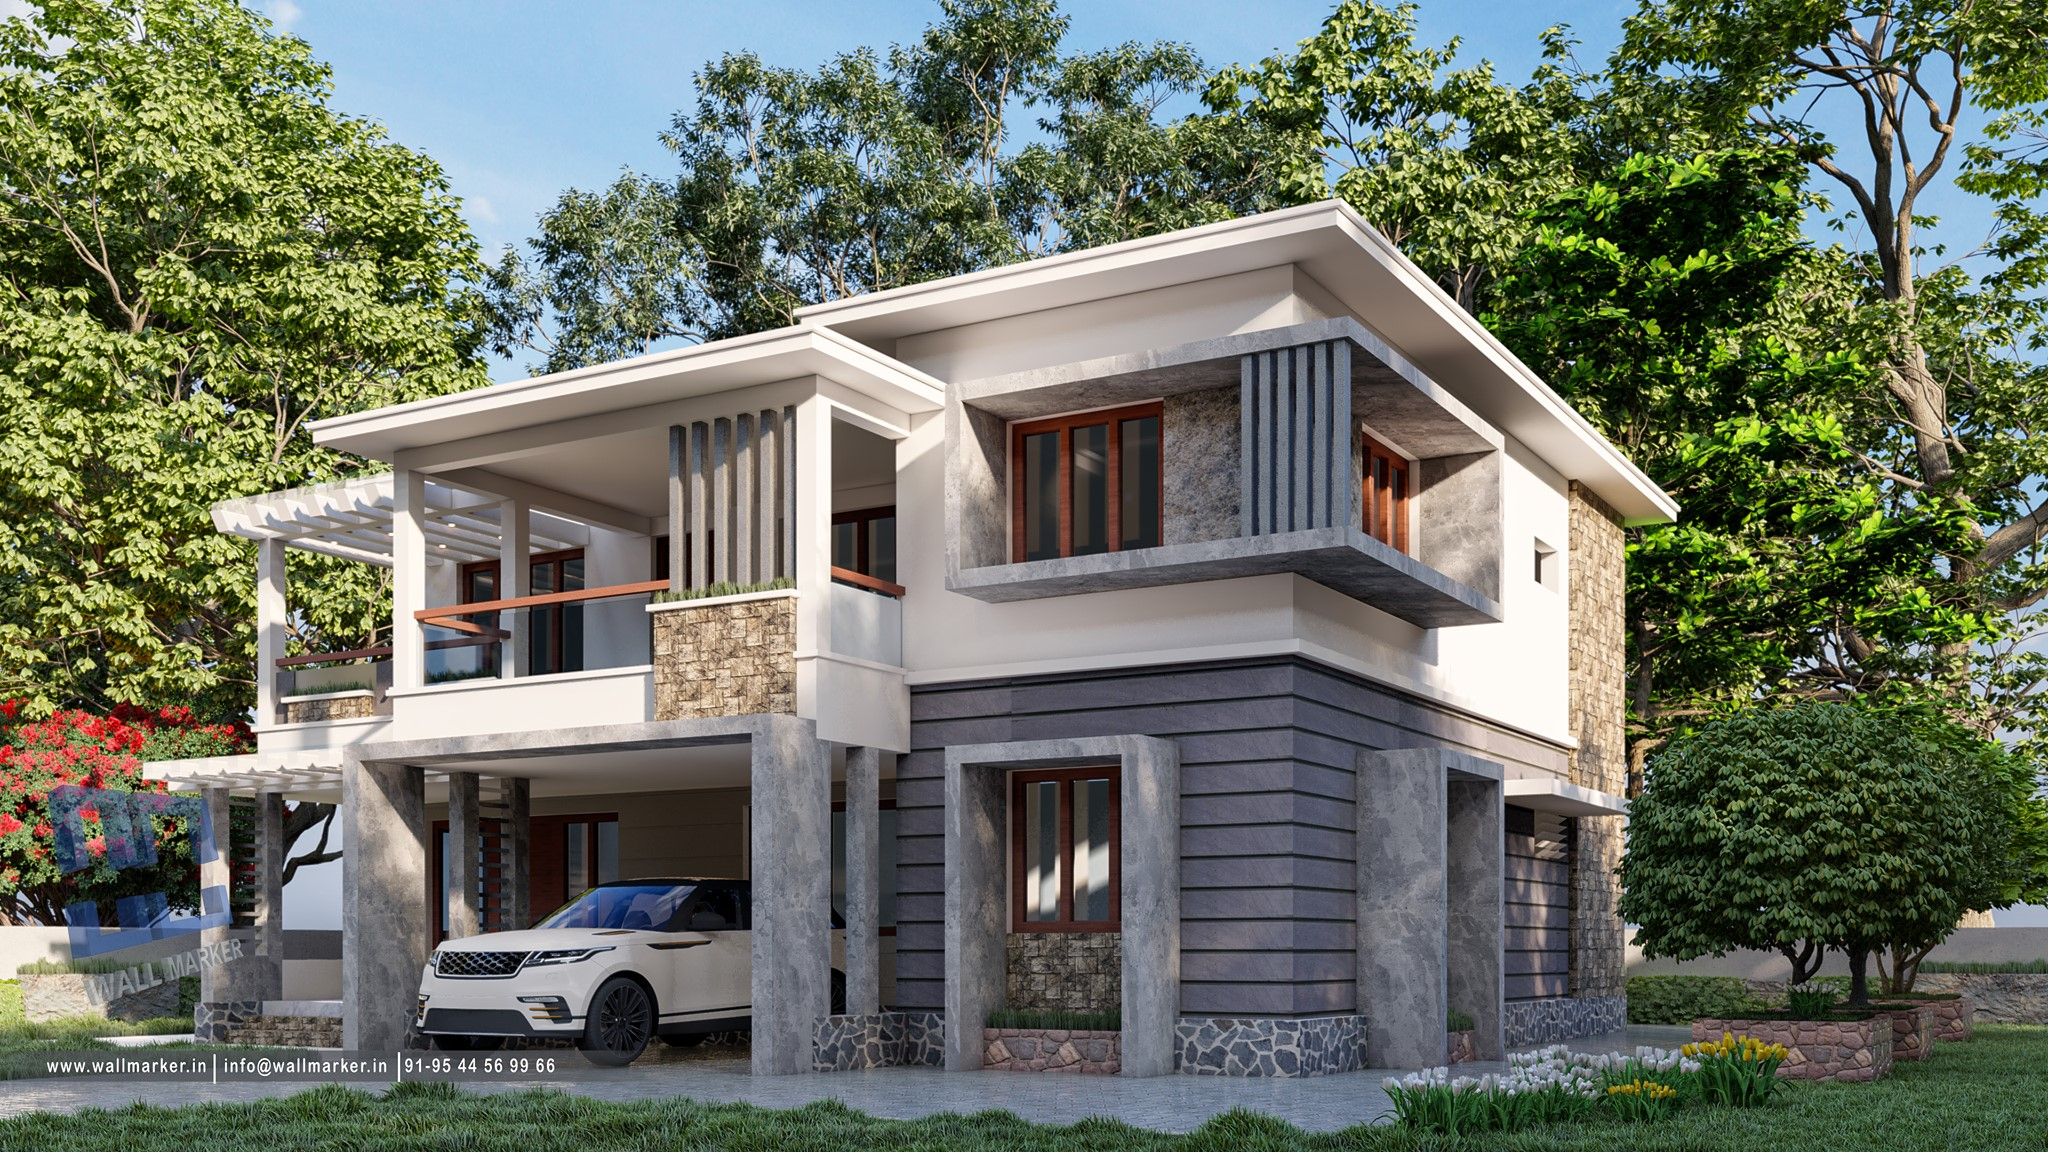 Builders and interiors in kannur Thalassery